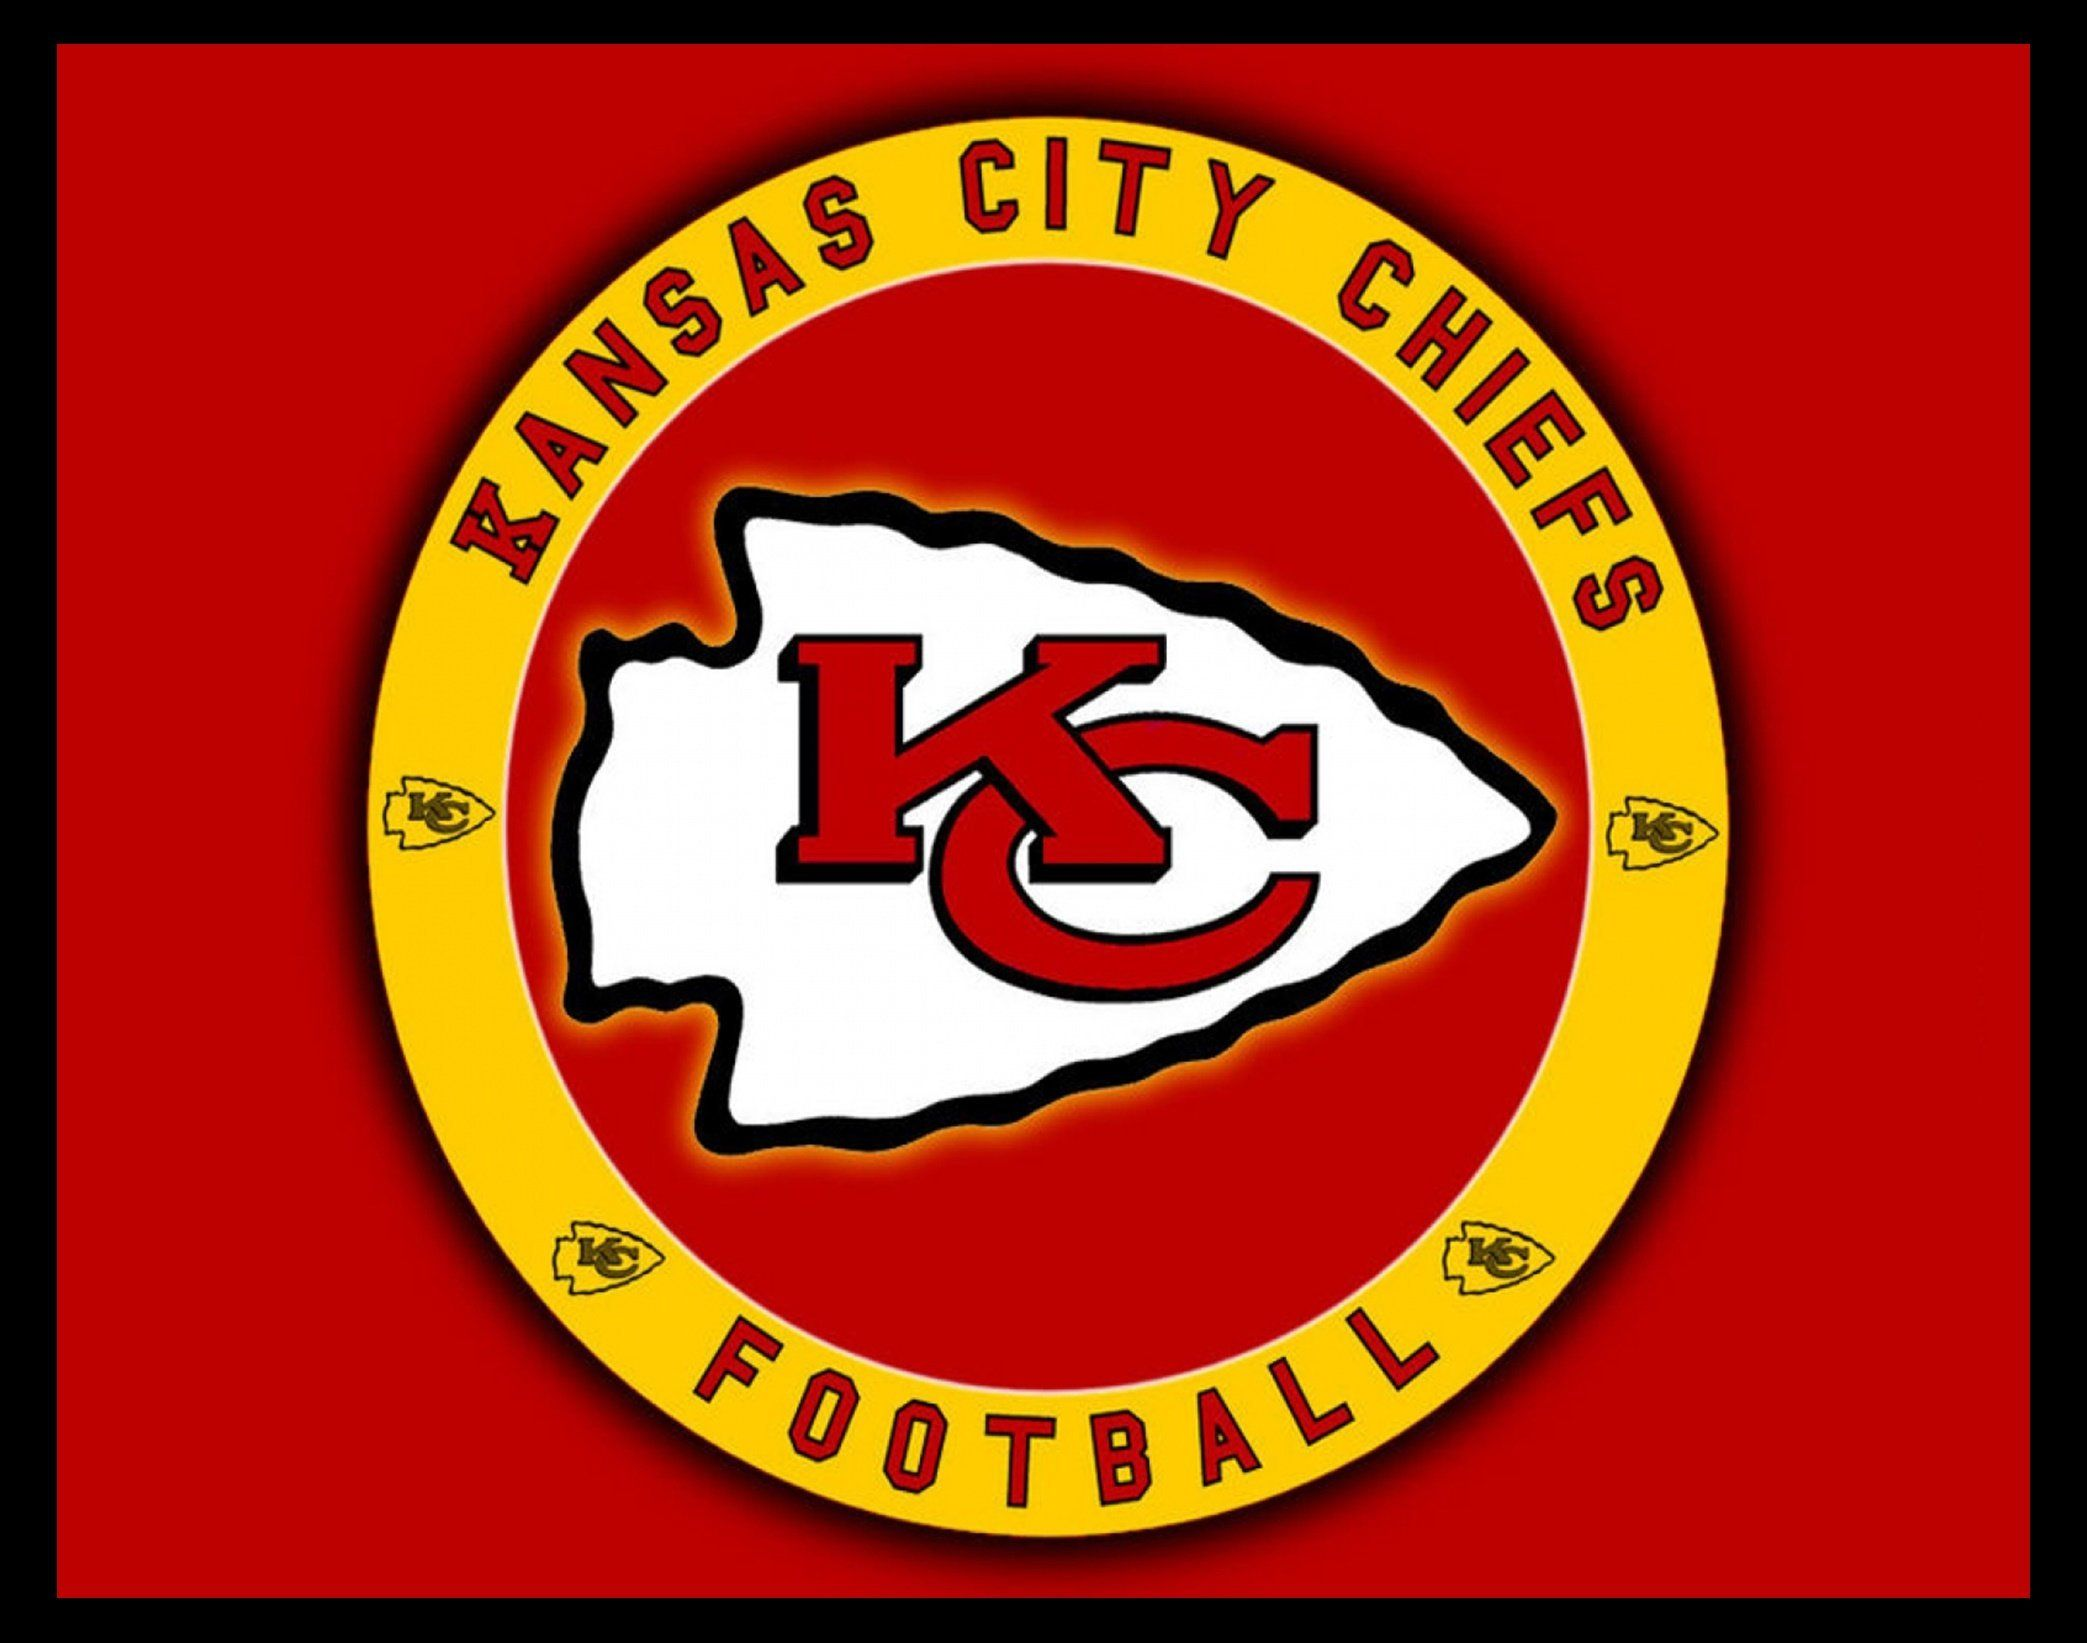 Kansas City Chiefs Arrowhead Logo Poster Gift For Men Women Game Room Wall Art Football Fan Wall Dec Kansas City Chiefs Logo Chiefs Logo Kansas City Chiefs